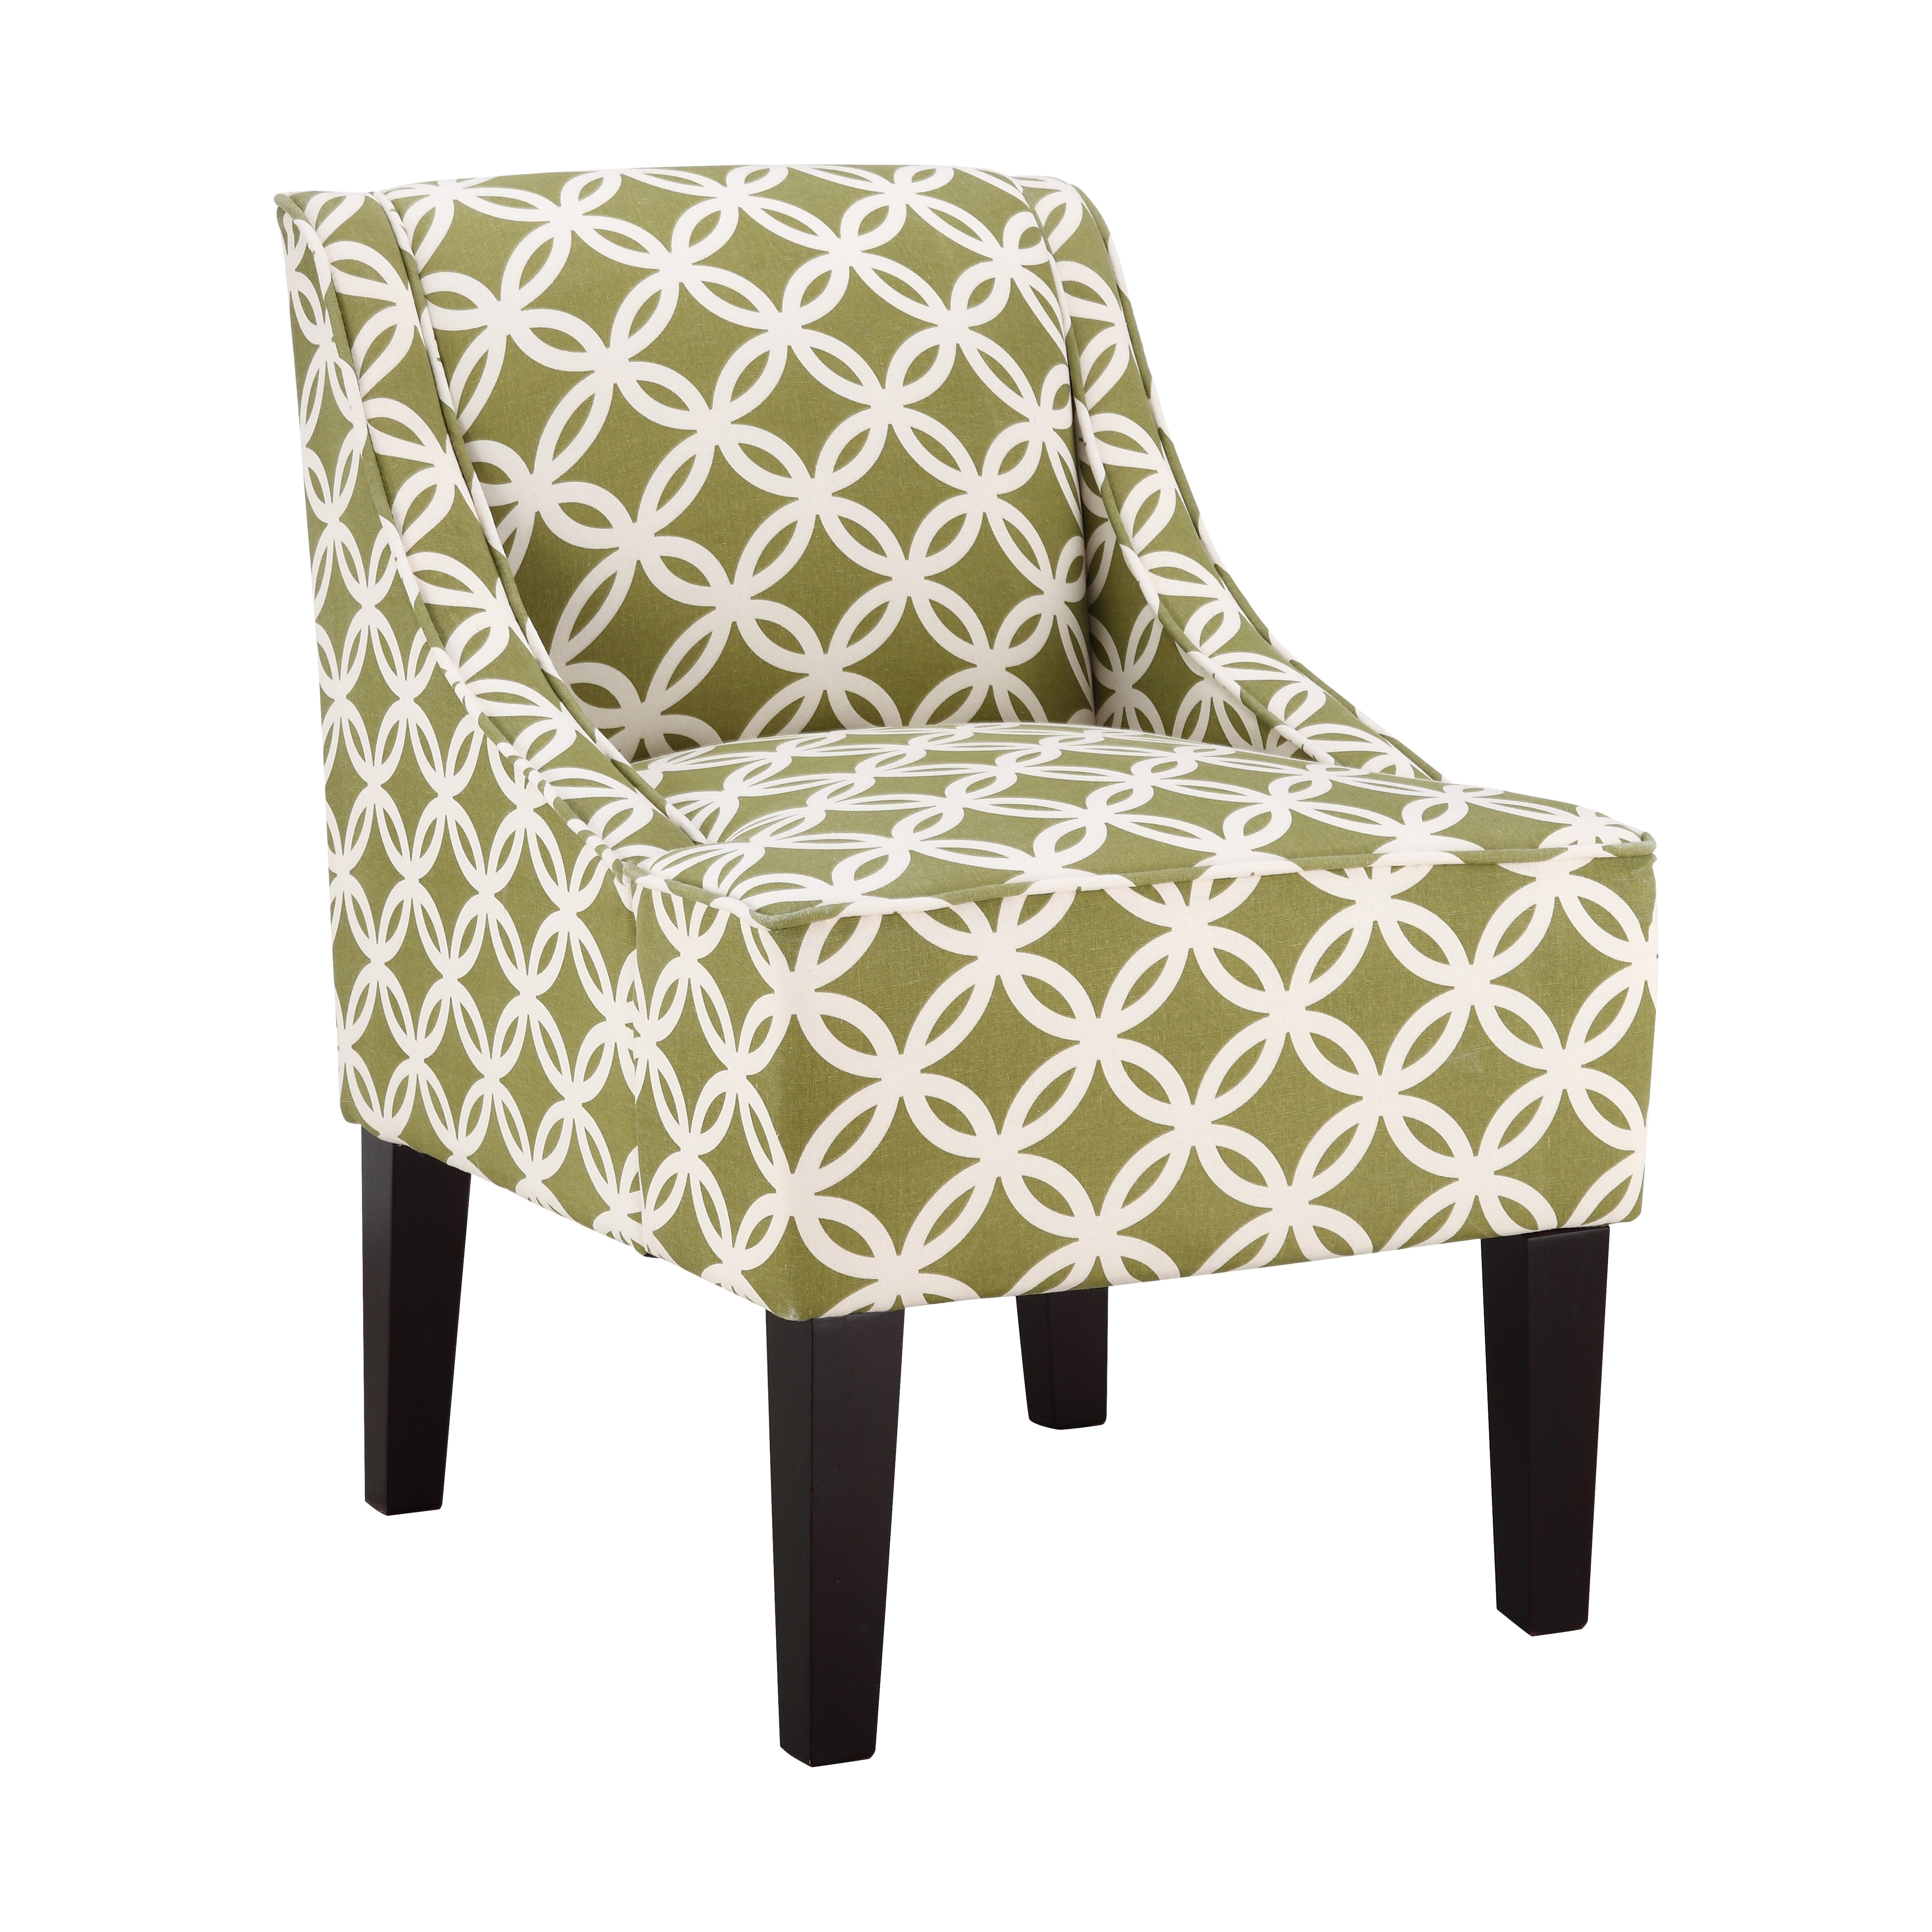 Fretwork Swoop Chair in Green